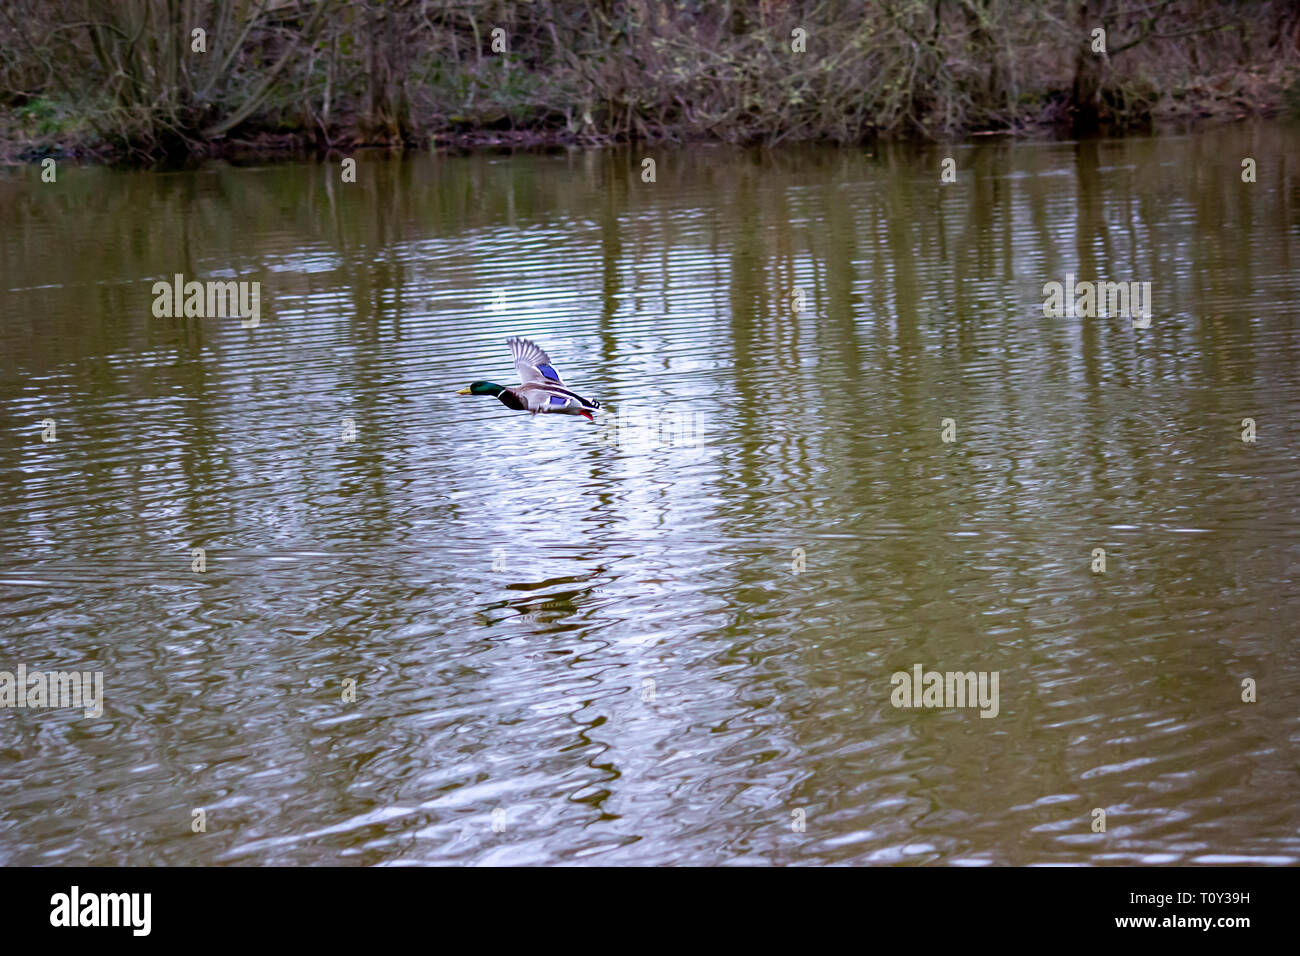 Wild ducks are just taking off from a lake in public park in Wilmslow, Cheshire - Stock Image